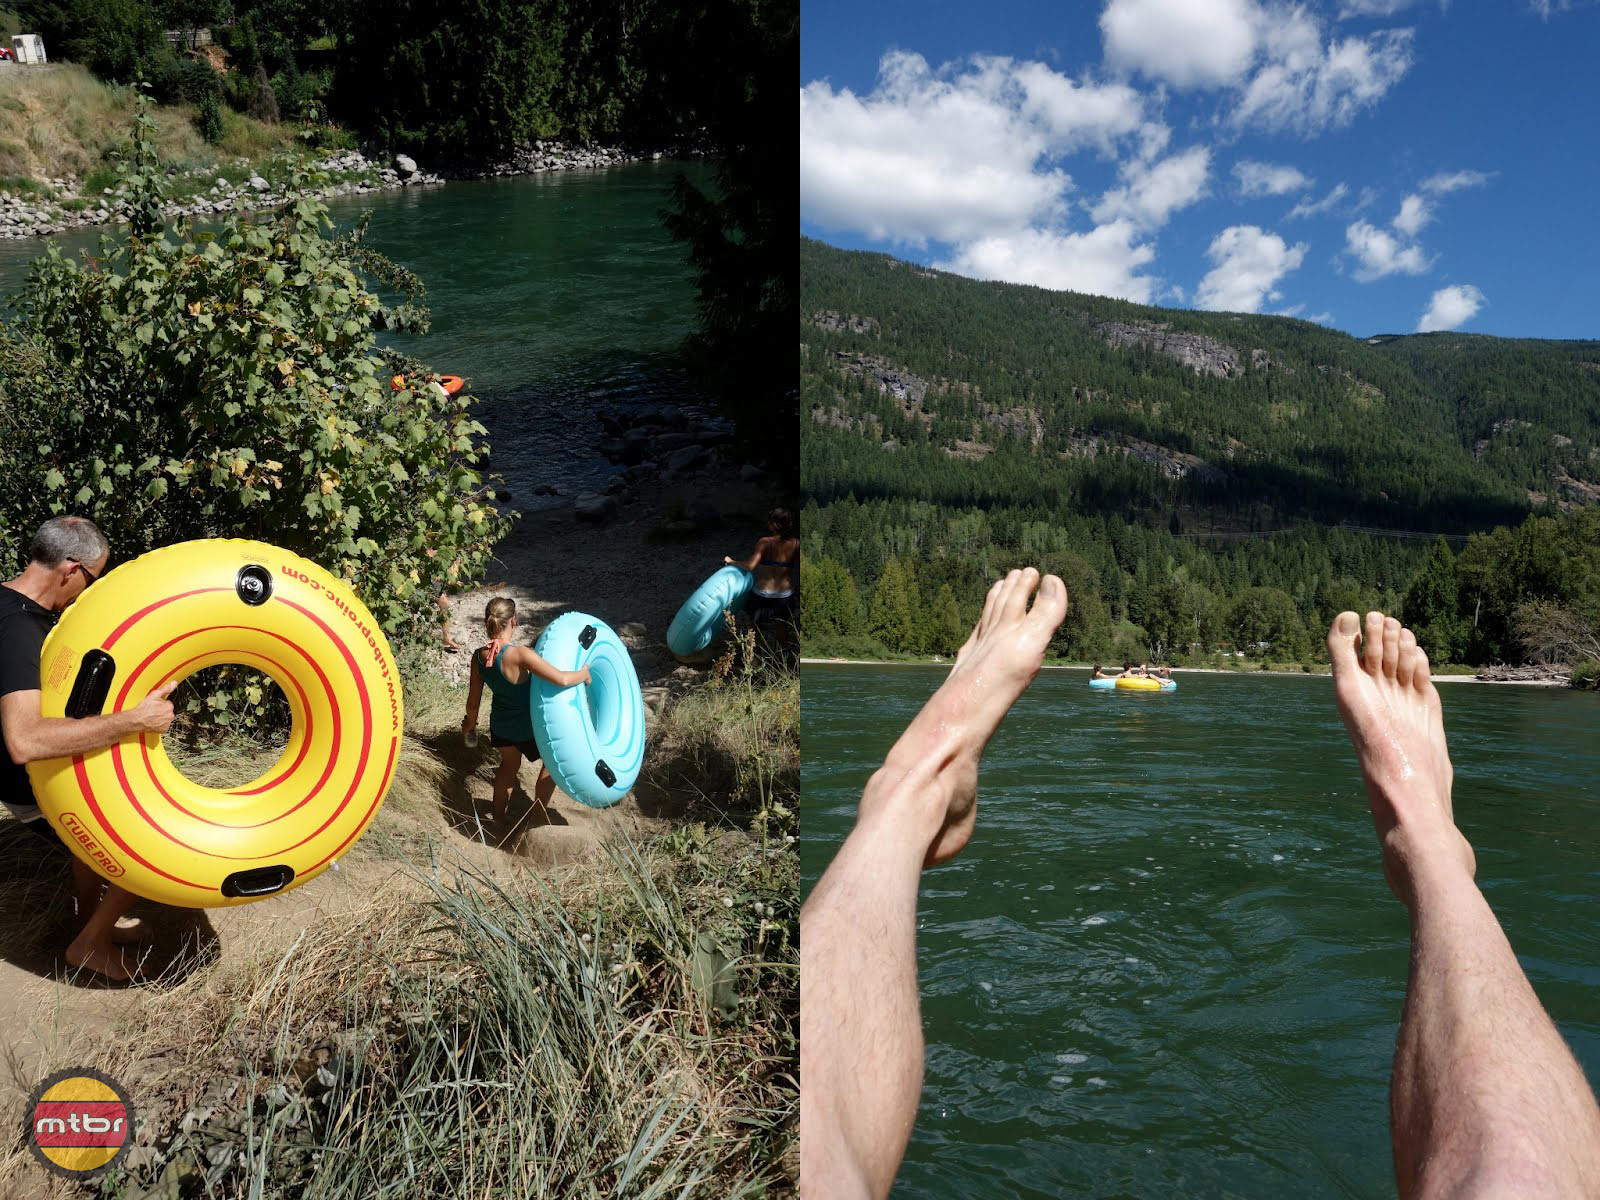 Tubing on Slocan River